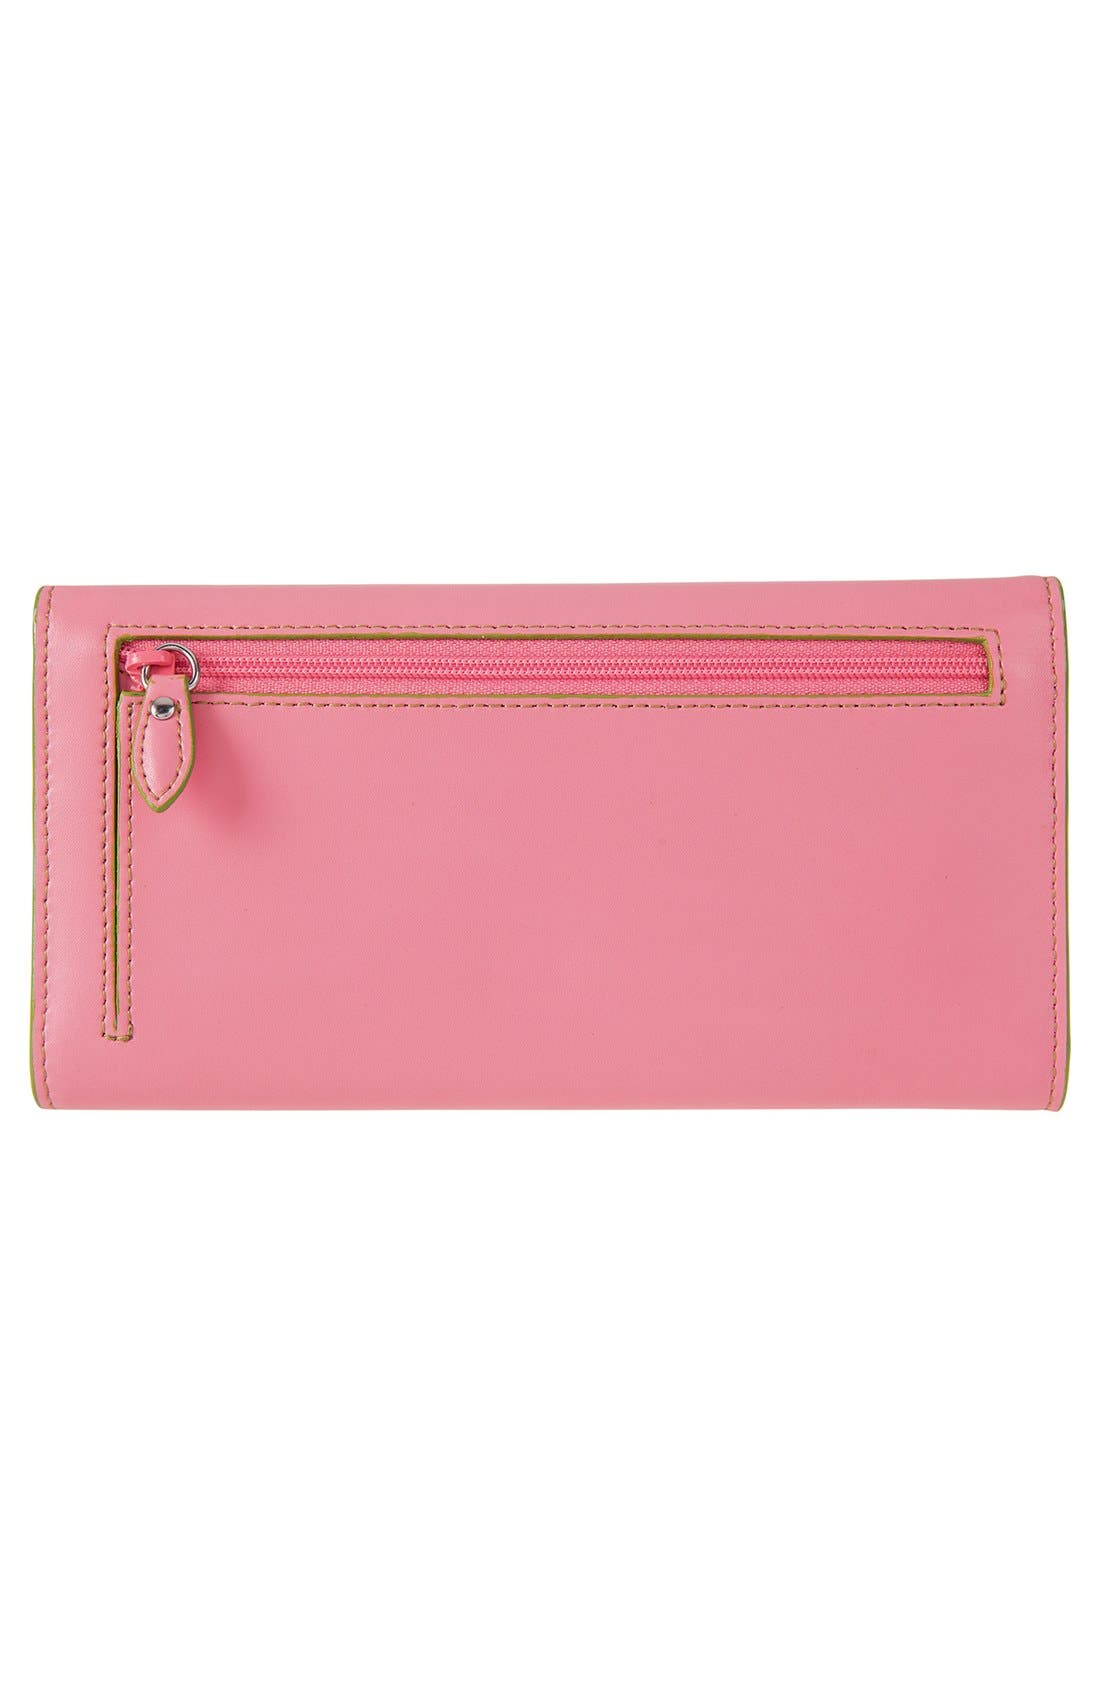 Alternate Image 3  - Lodis 'Audrey' Checkbook Clutch Wallet